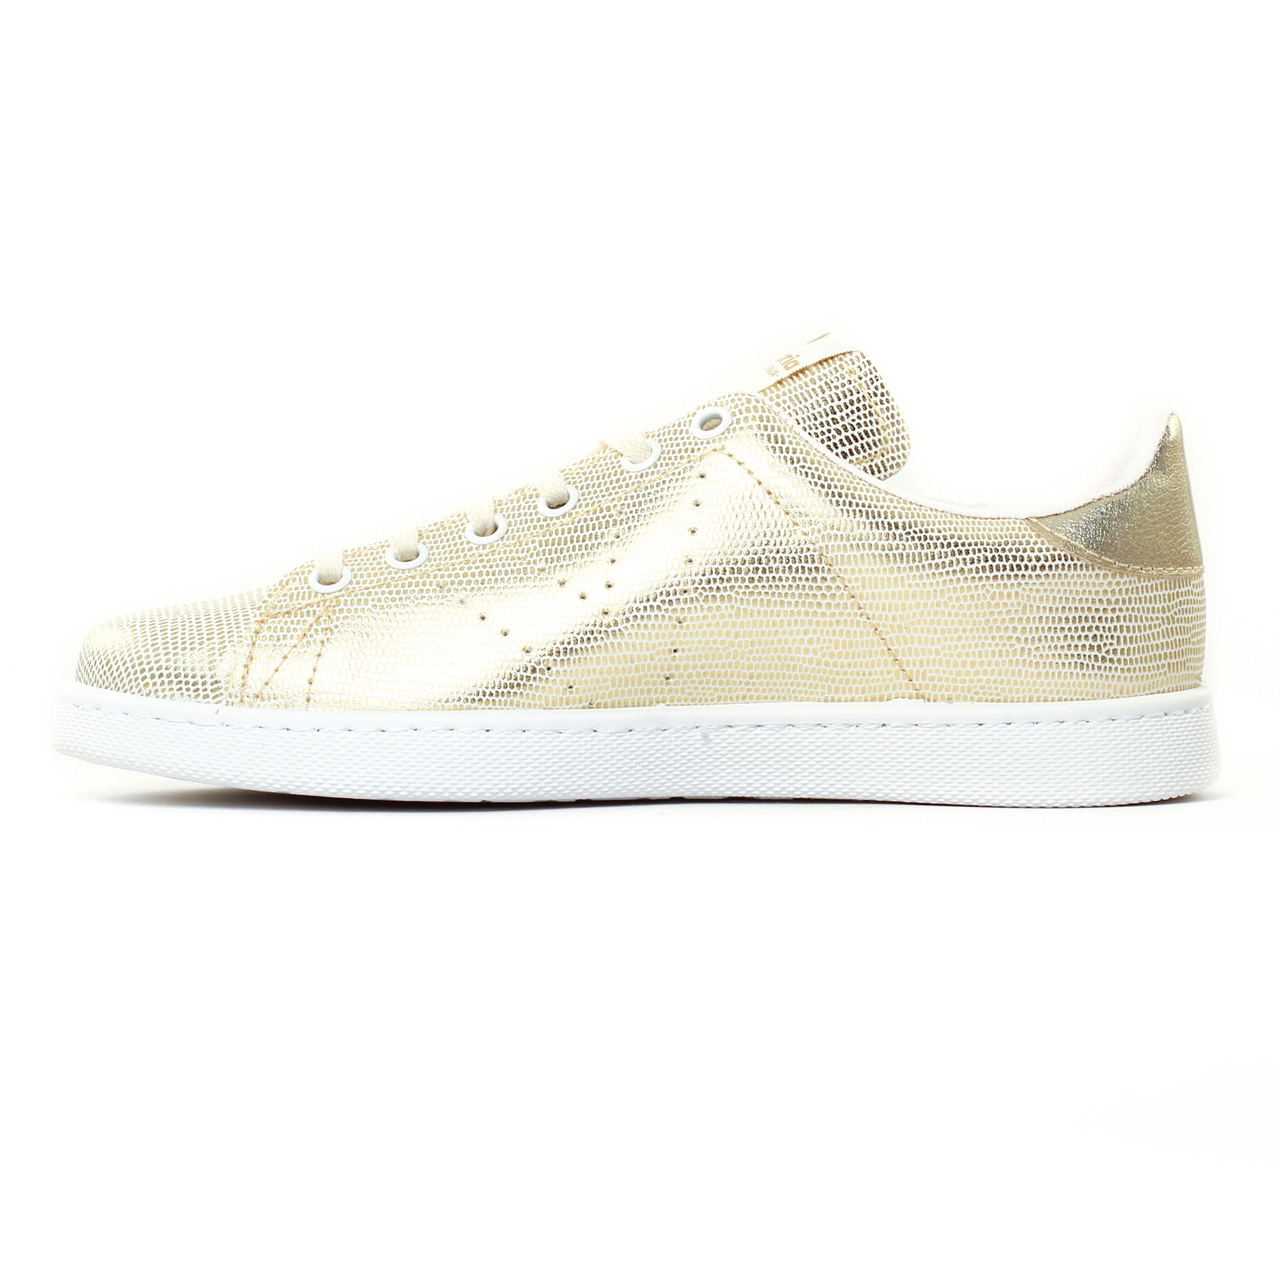 VICTORIA DEPORTIVO 12545 OR cdiscount chaussure femme victoria